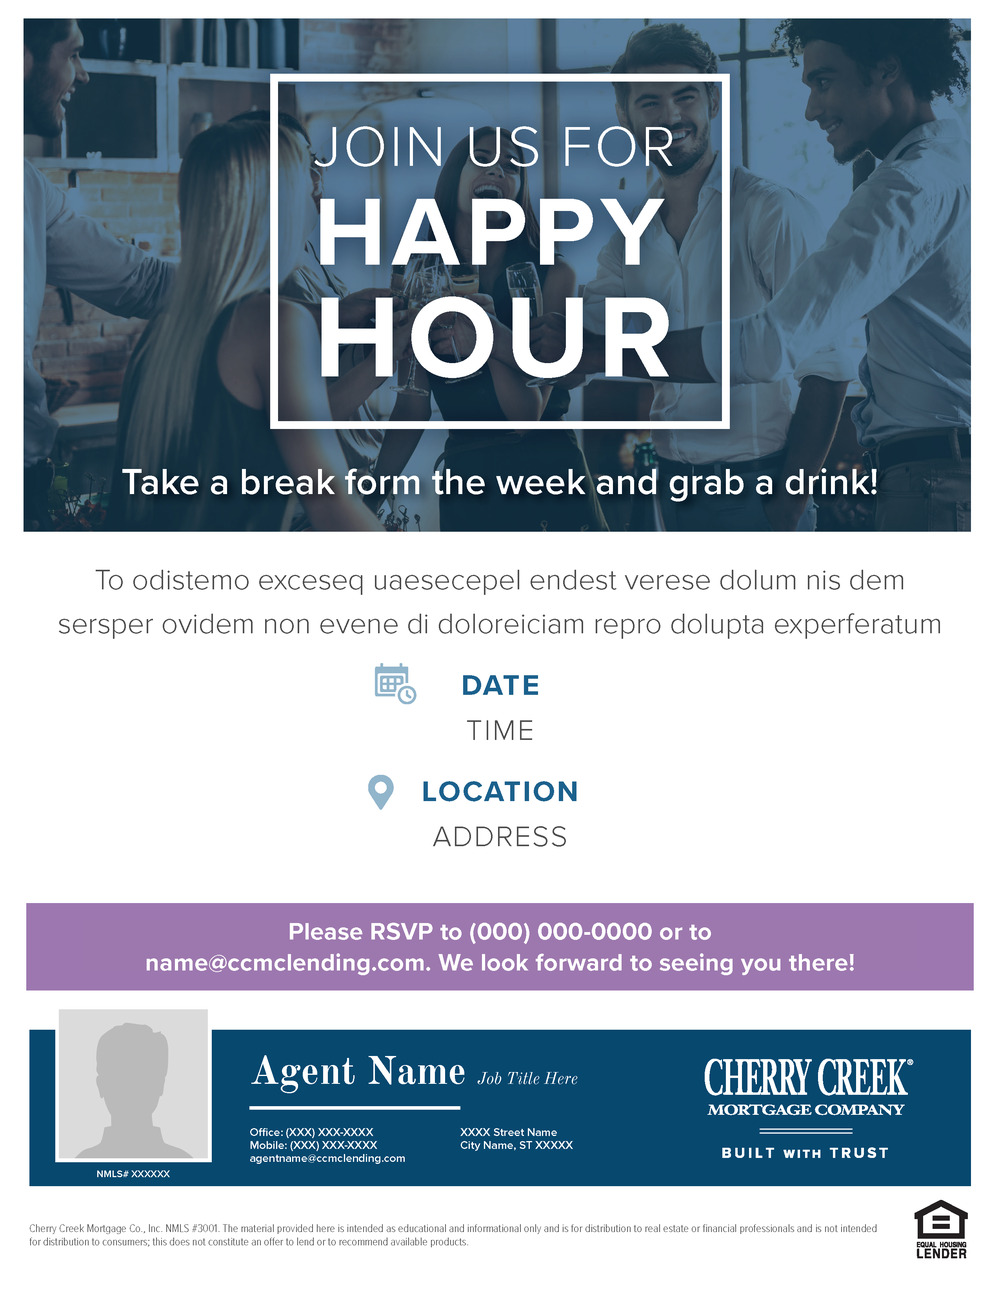 Happy Hour Flyer 1_Page_1.png